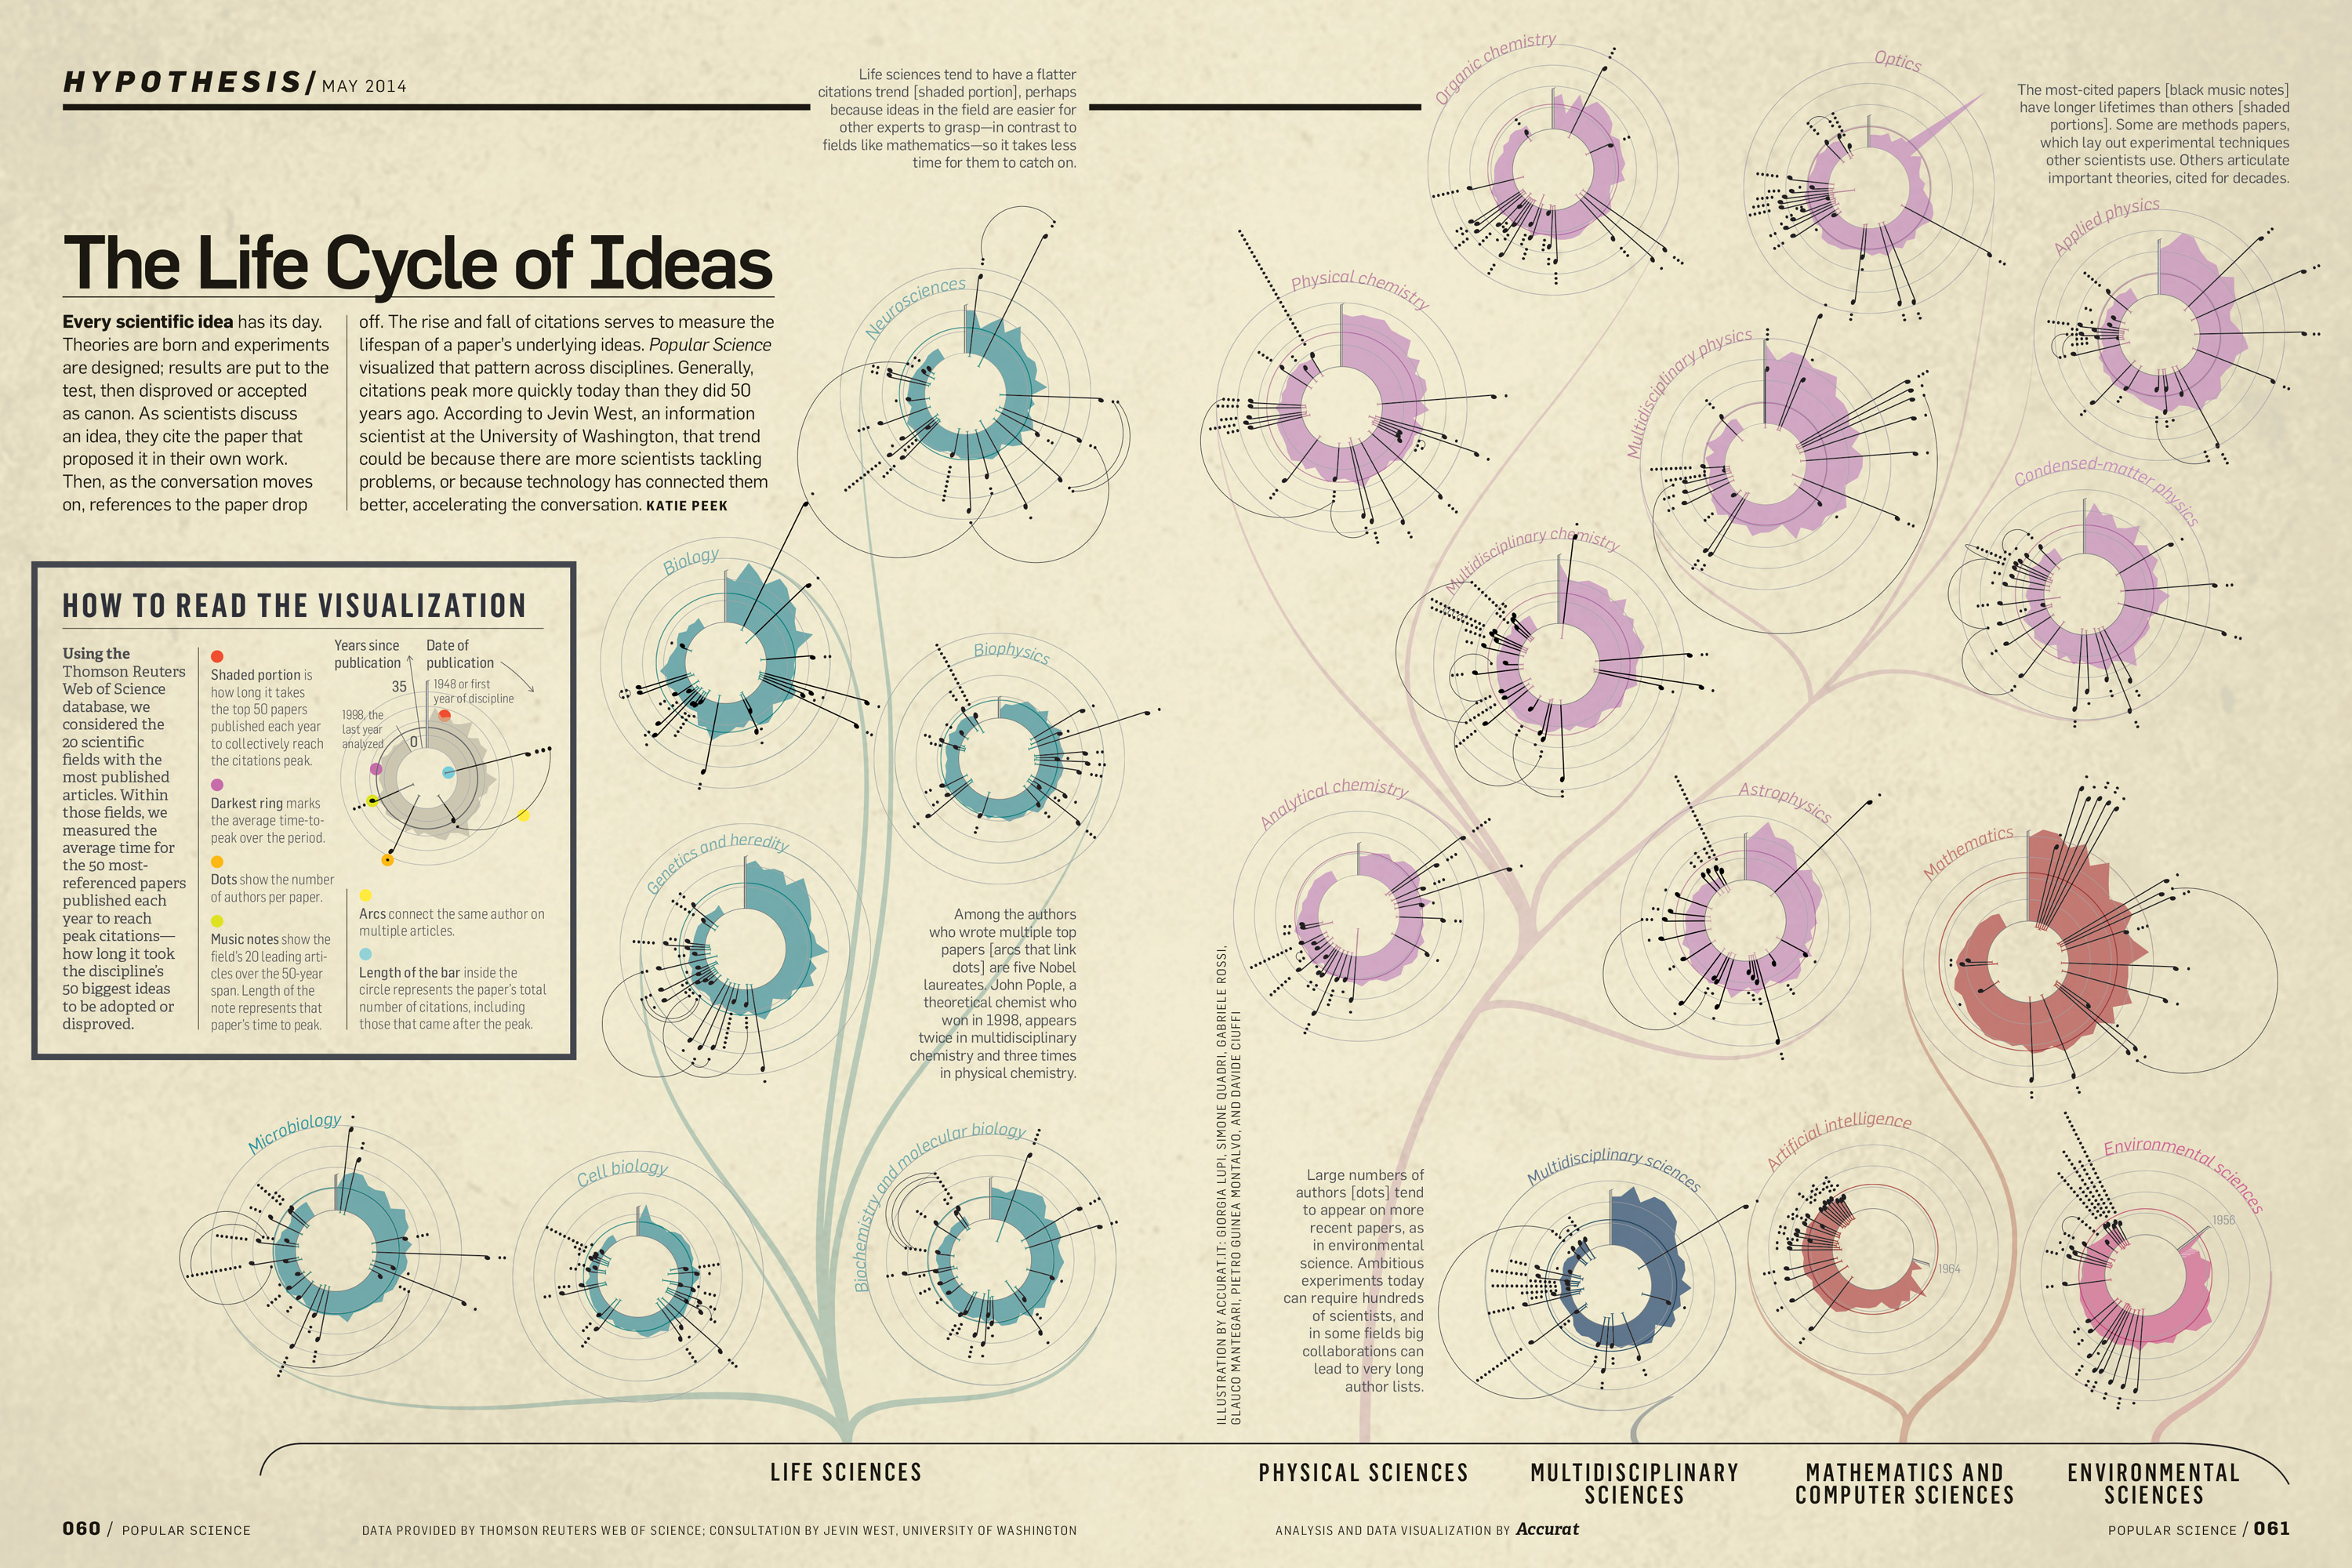 The Life Cycle of Ideas, Accurat for Popular Science